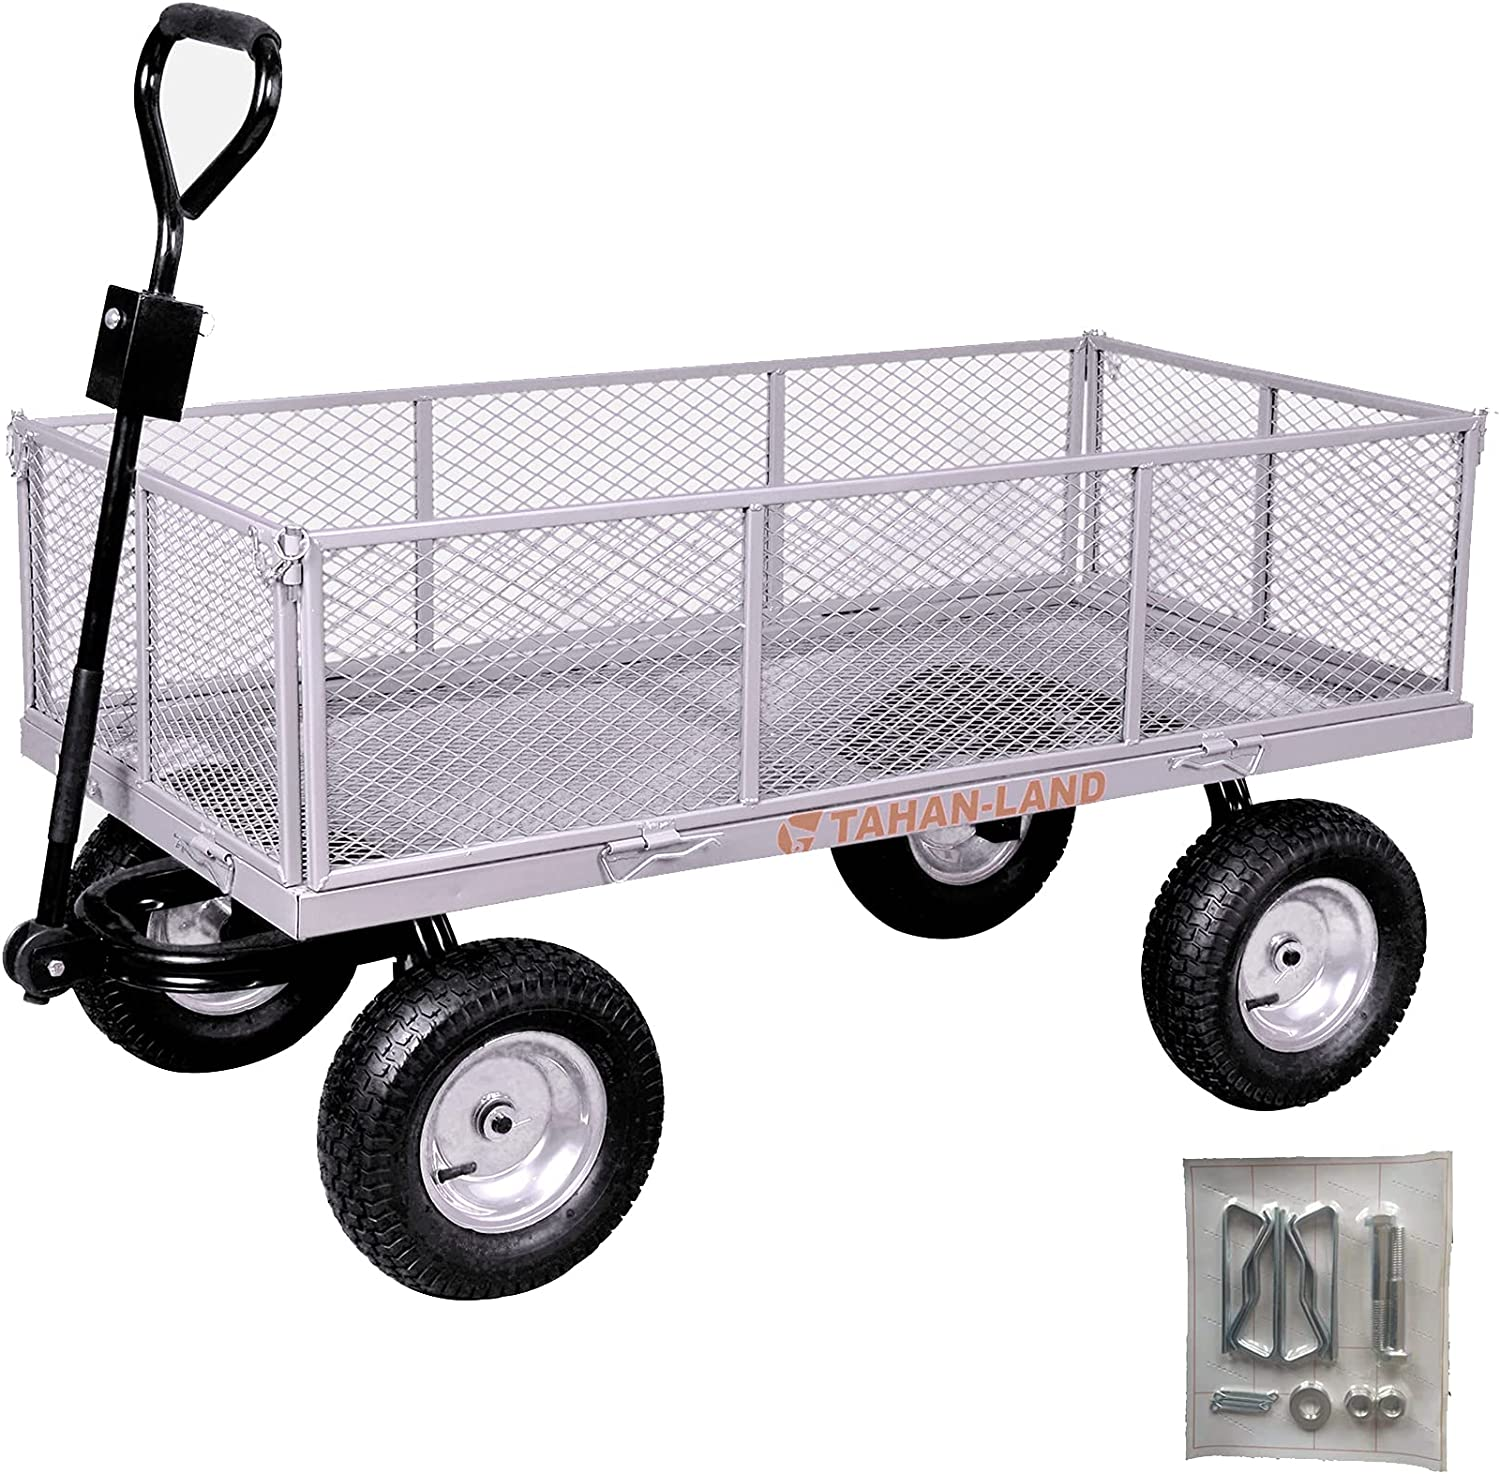 """Utility Heavy-Duty Garden Wagon Cart, Mesh Steel Hand Truck with Removable Folding Sides, 1100-lbs Load Capacity, Grey-51.1"""" x 25.6""""x 6.7"""" inch : Everything Else"""